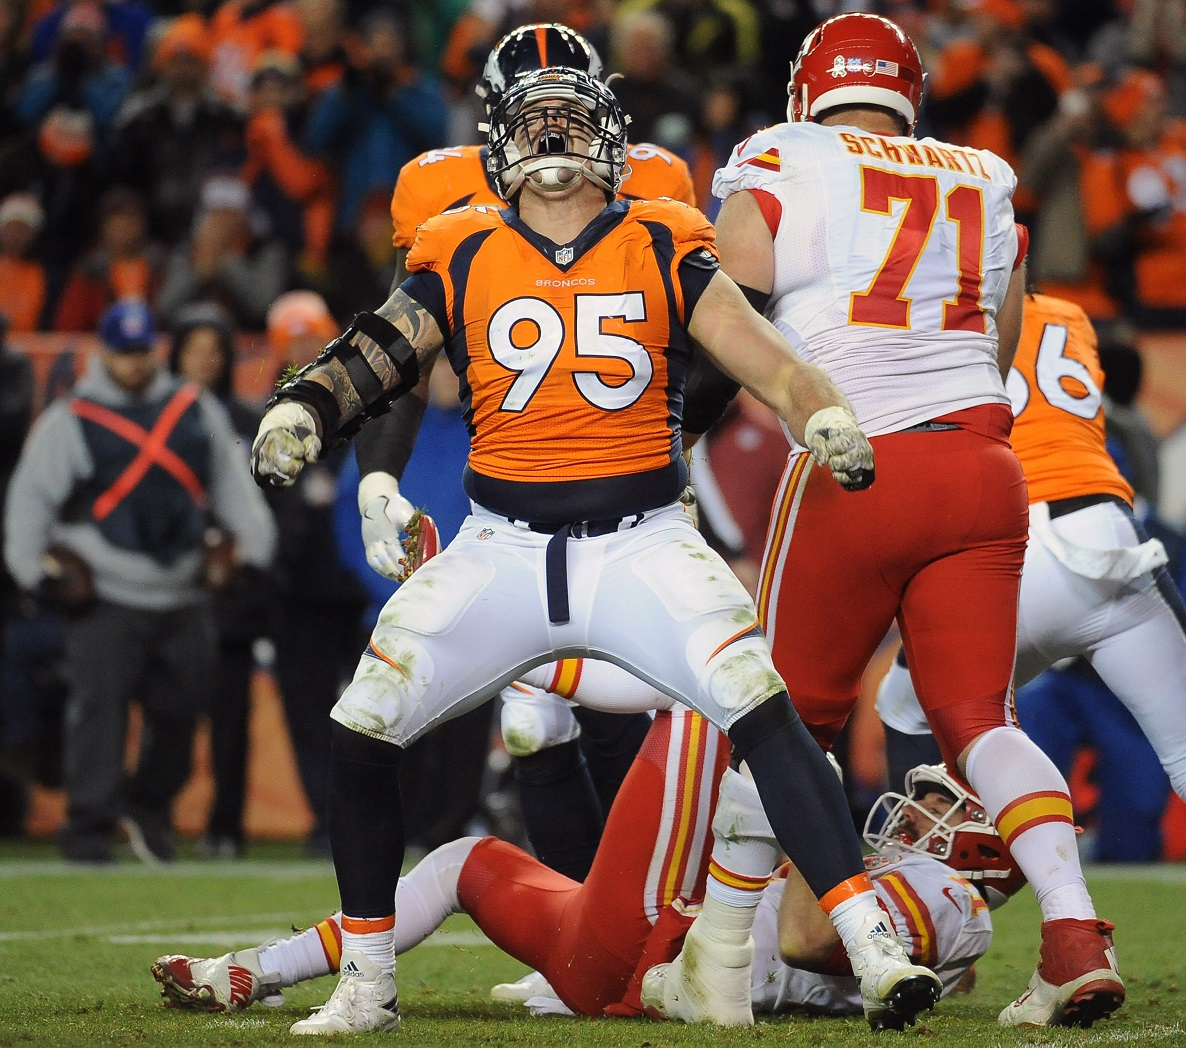 Appreciative Derek Wolfe says he 'Dodged a bullet' and to #blameitonthecleats